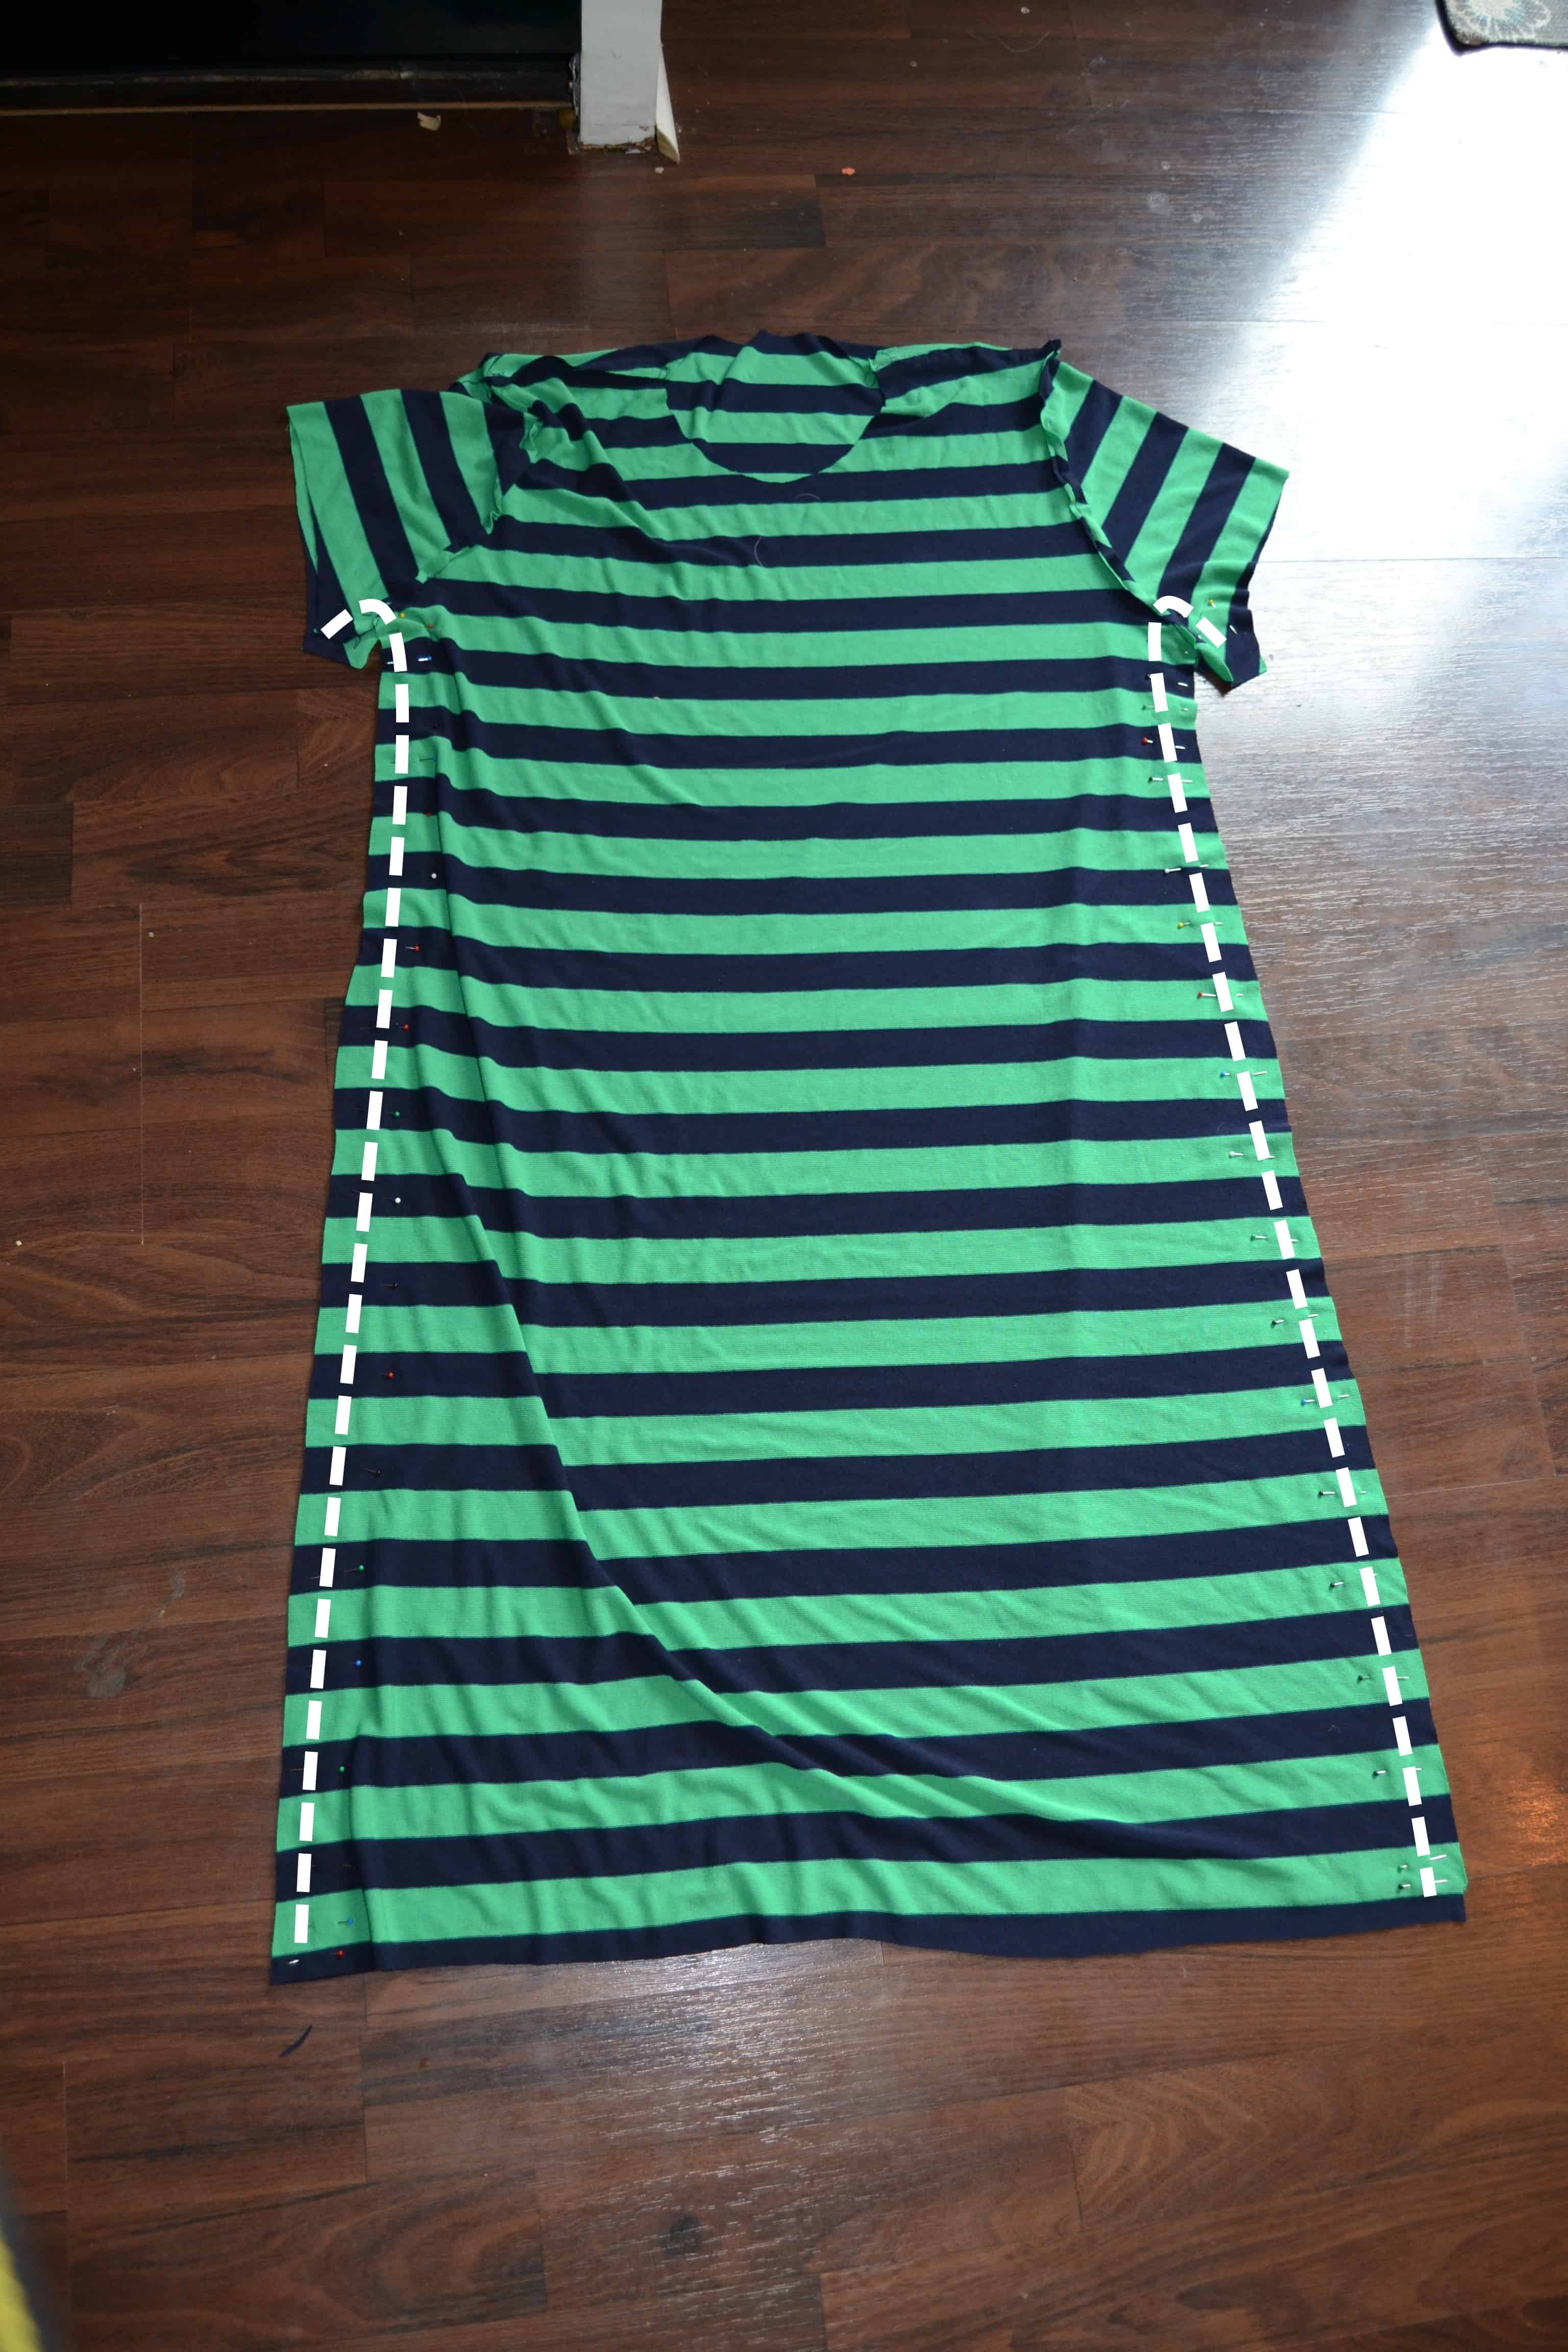 Unique Shirt Dress Tutorial  Check It Out To Learn How To Turn Any Shirt